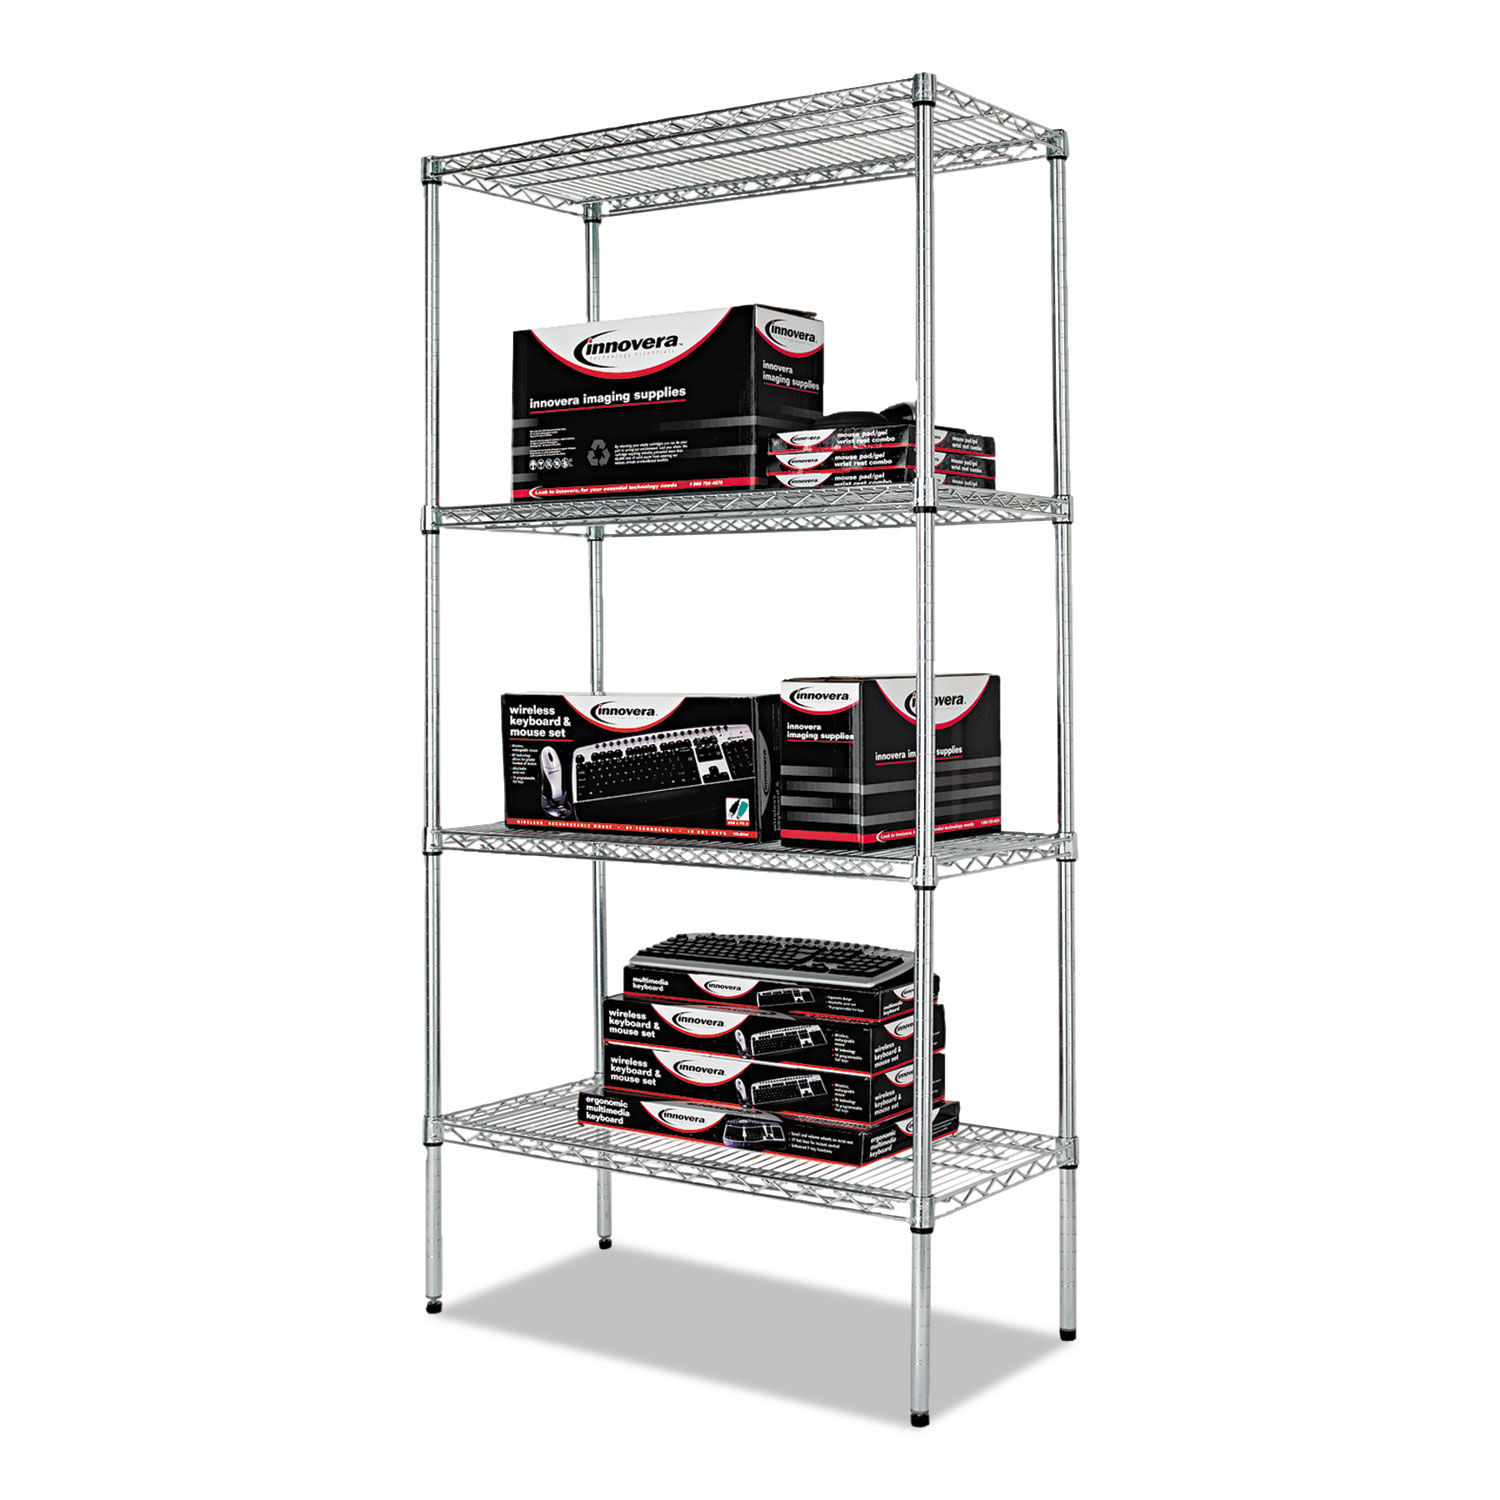 NSF Certified Industrial 4-Shelf Wire Shelving Kit by